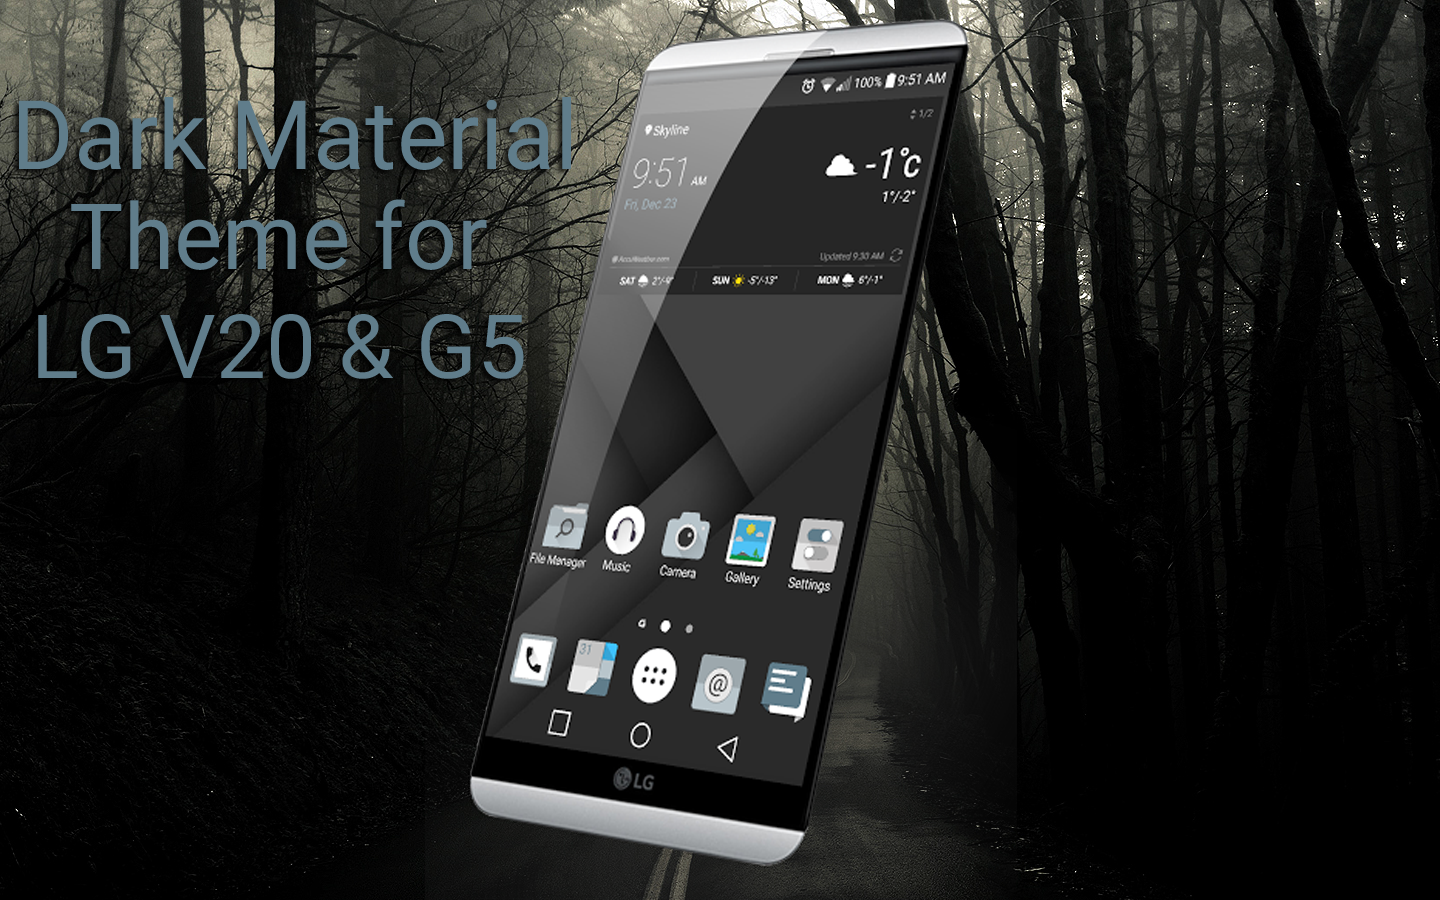 Dark Material theme for LG V20 1 0 3 APK Download - Android